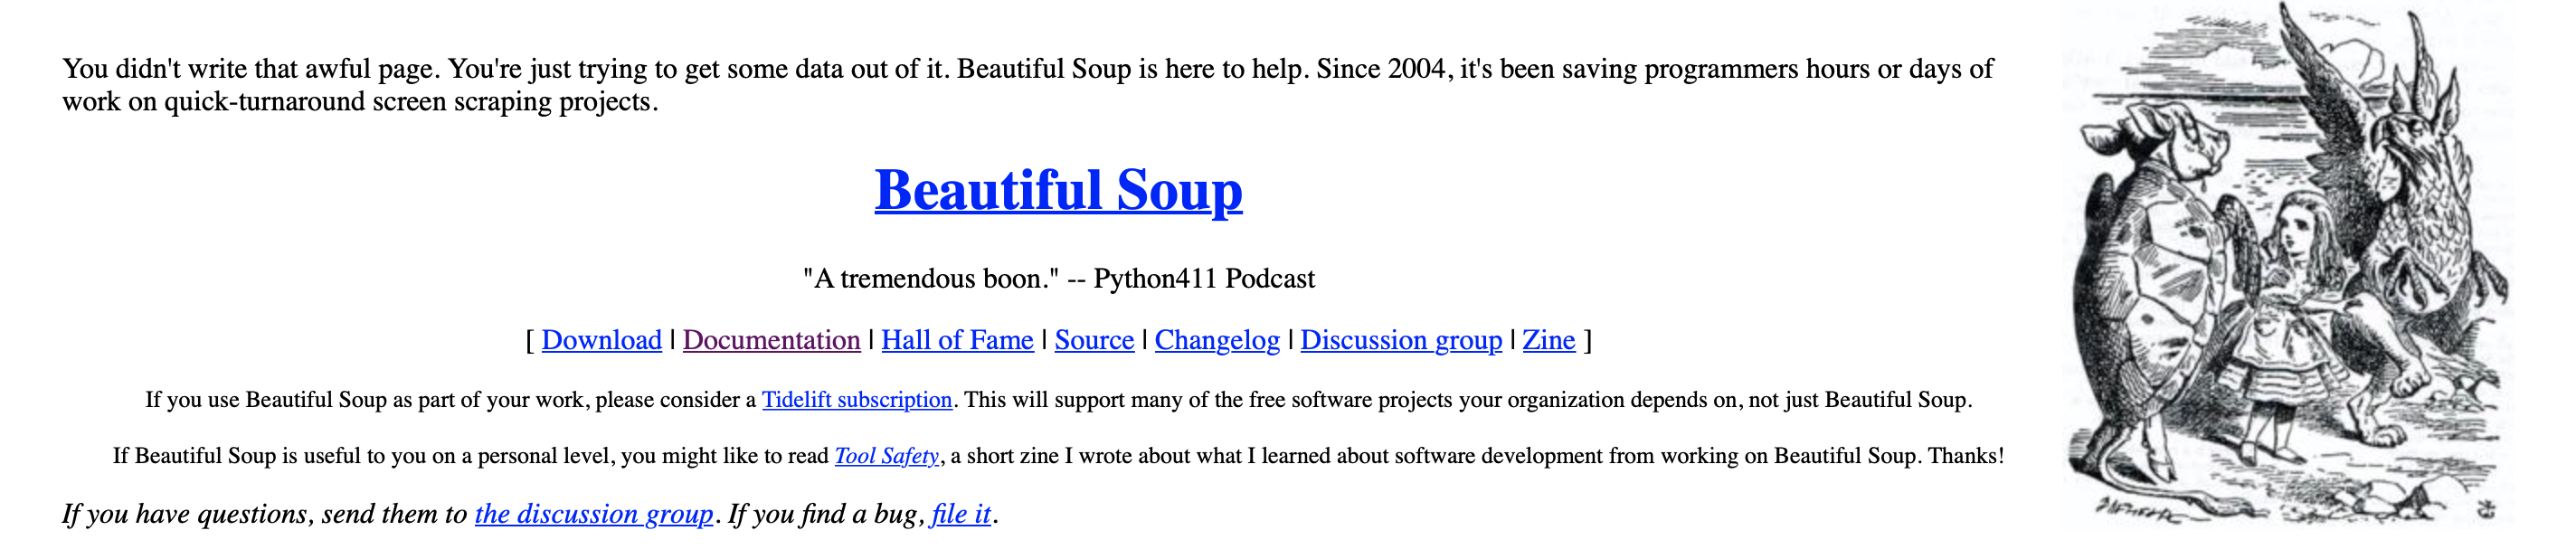 Forget APIs Do Python Scraping Using Beautiful Soup, Import